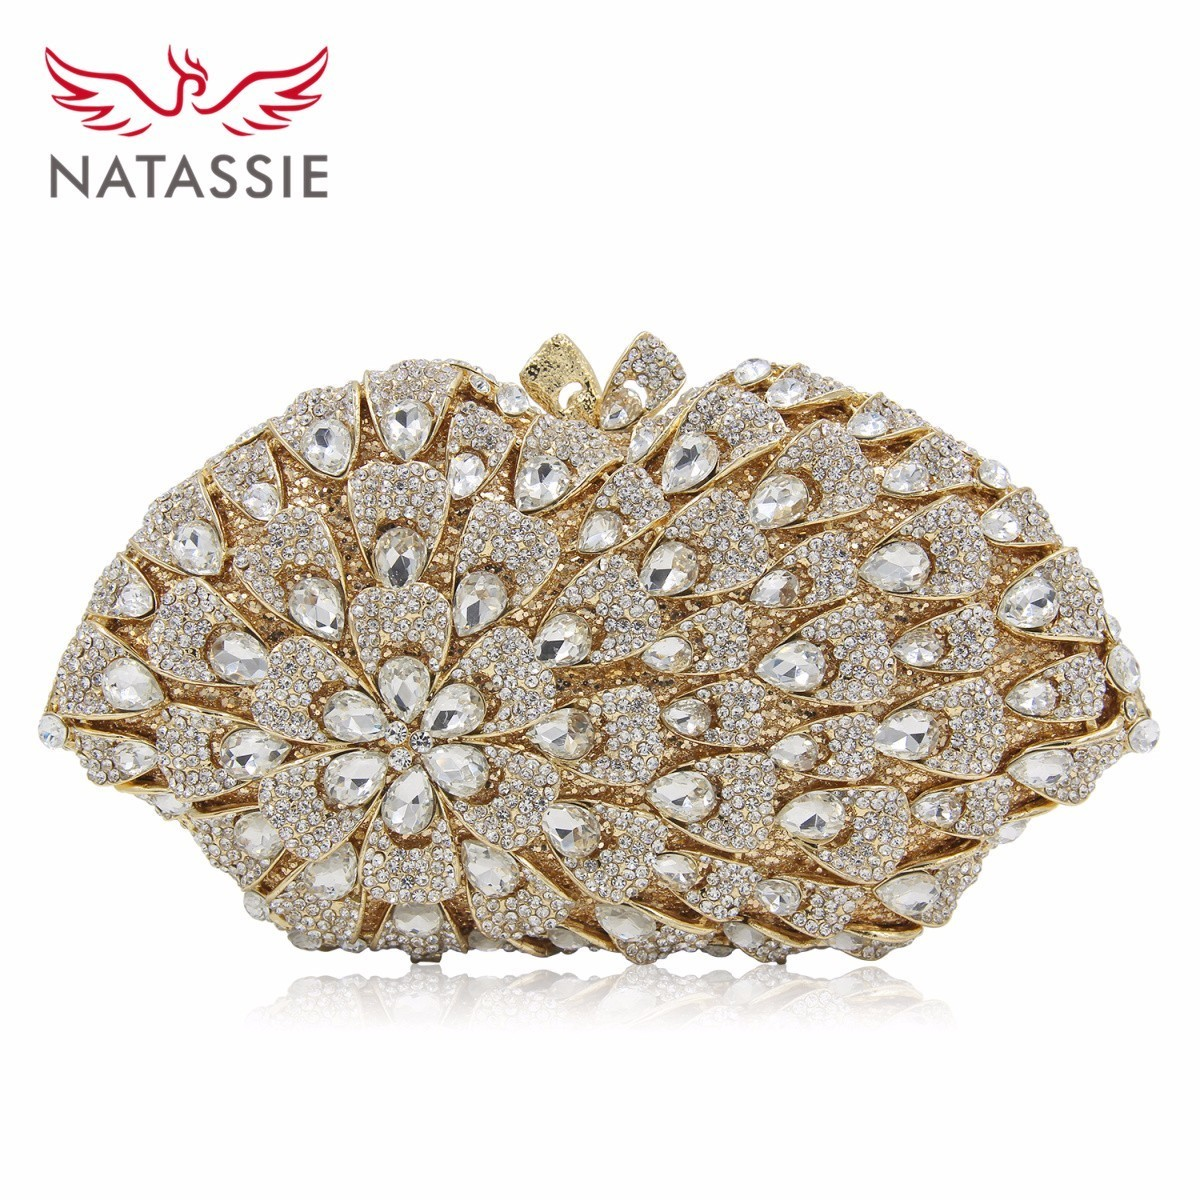 NATASSIE New Design Crystal Clutch Big Flower Women Evening Bag White Gold Ladies Wedding Purse Good Quality vertu signature s design white gold реплика москва